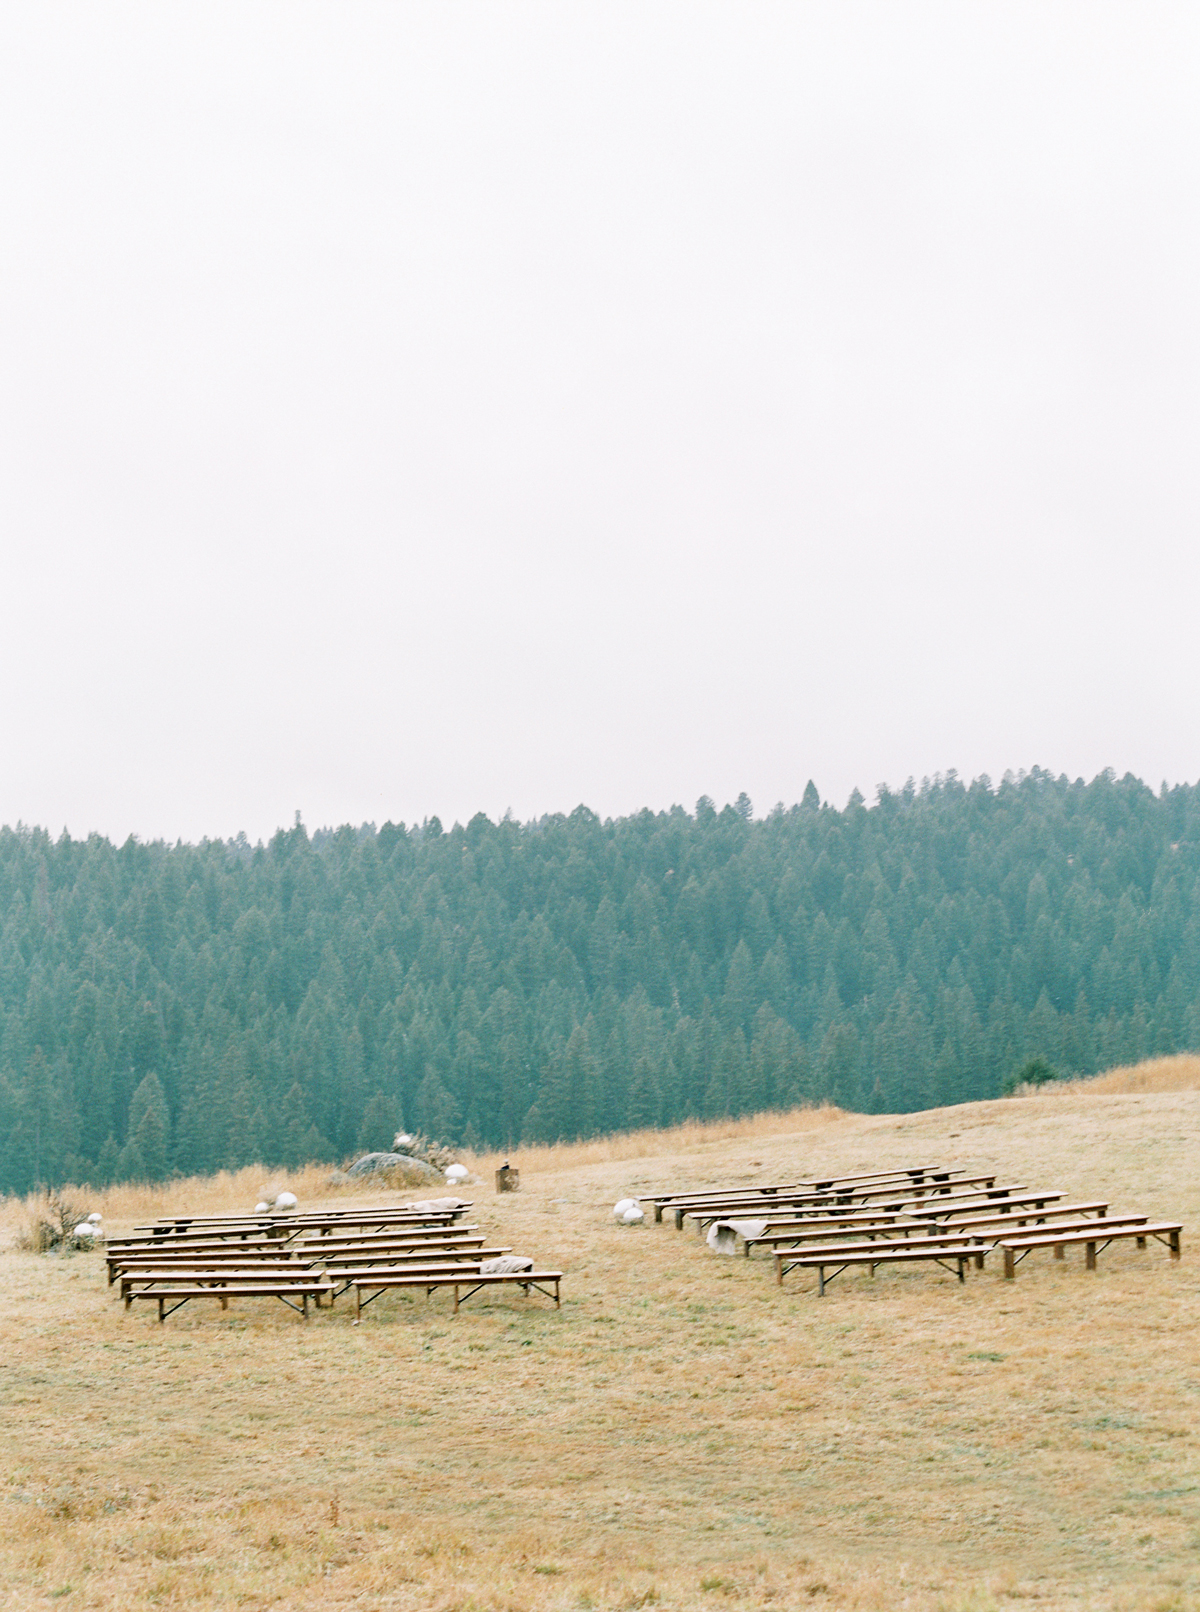 ceremony setup overlooking mountains and aisles lined with disco balls